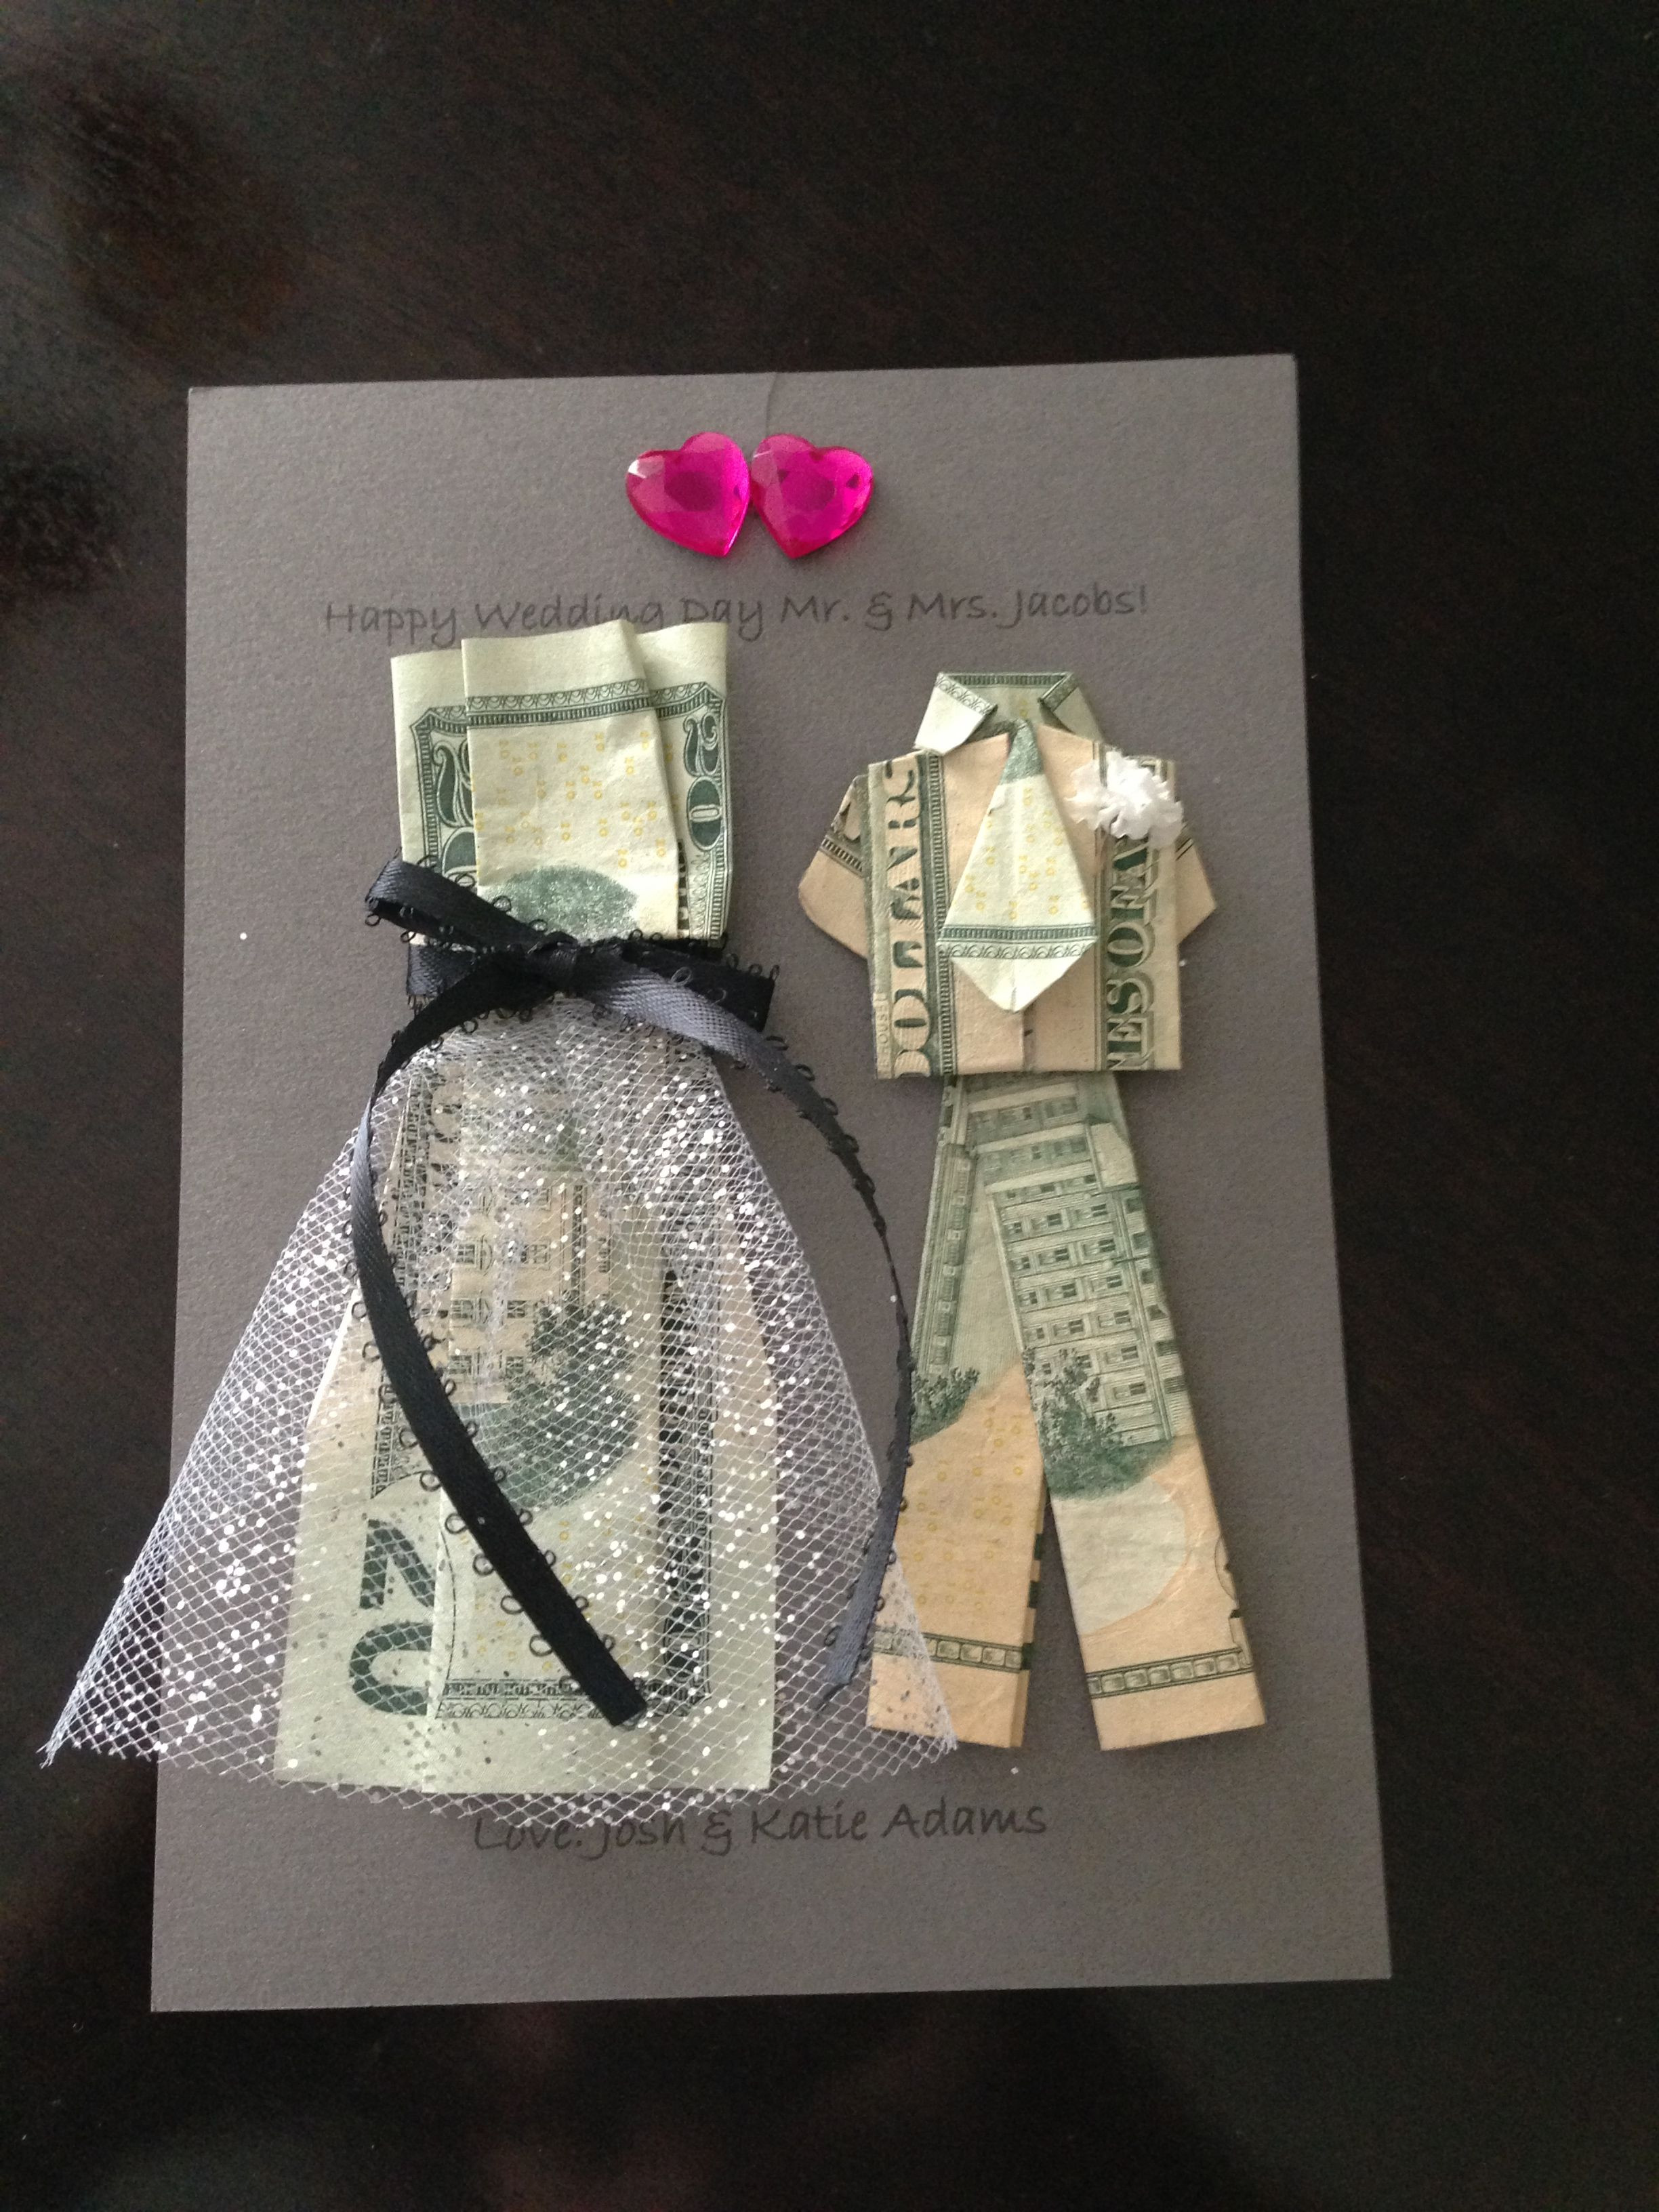 Best ideas about Ideas For A Wedding Gift . Save or Pin Wedding Money Gifts on Pinterest Now.